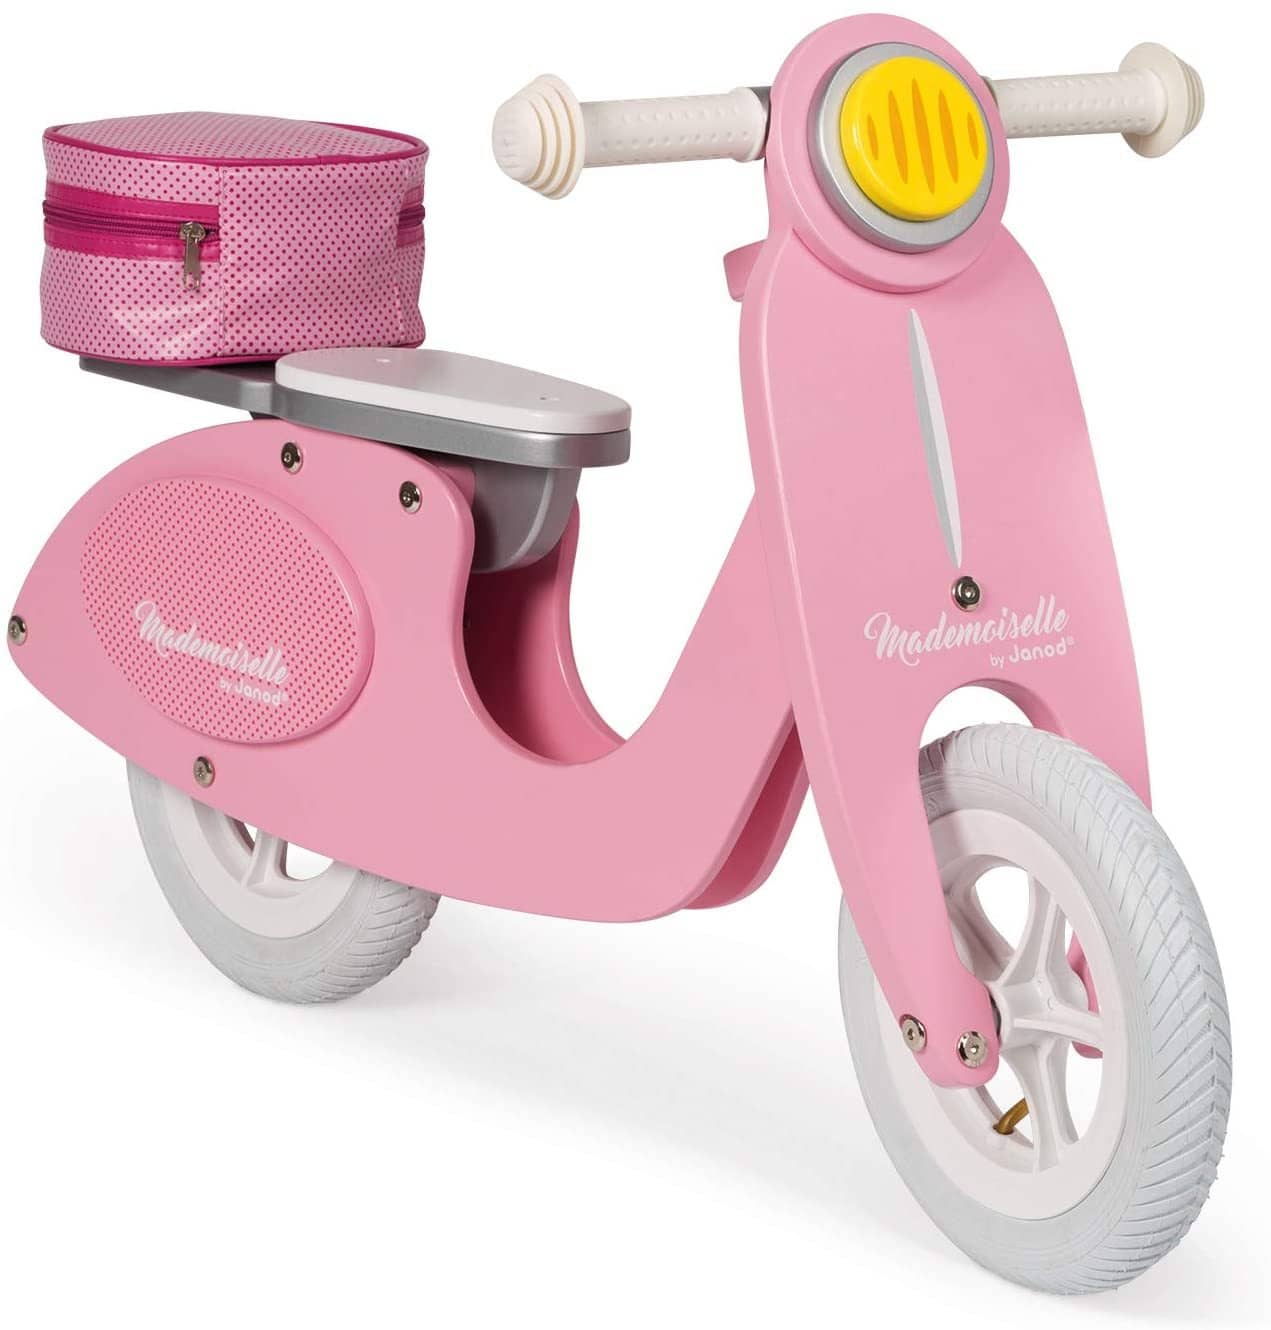 Janod Mademoiselle Pink Wooden Scooter Balance Bike-Kidding Around NYC